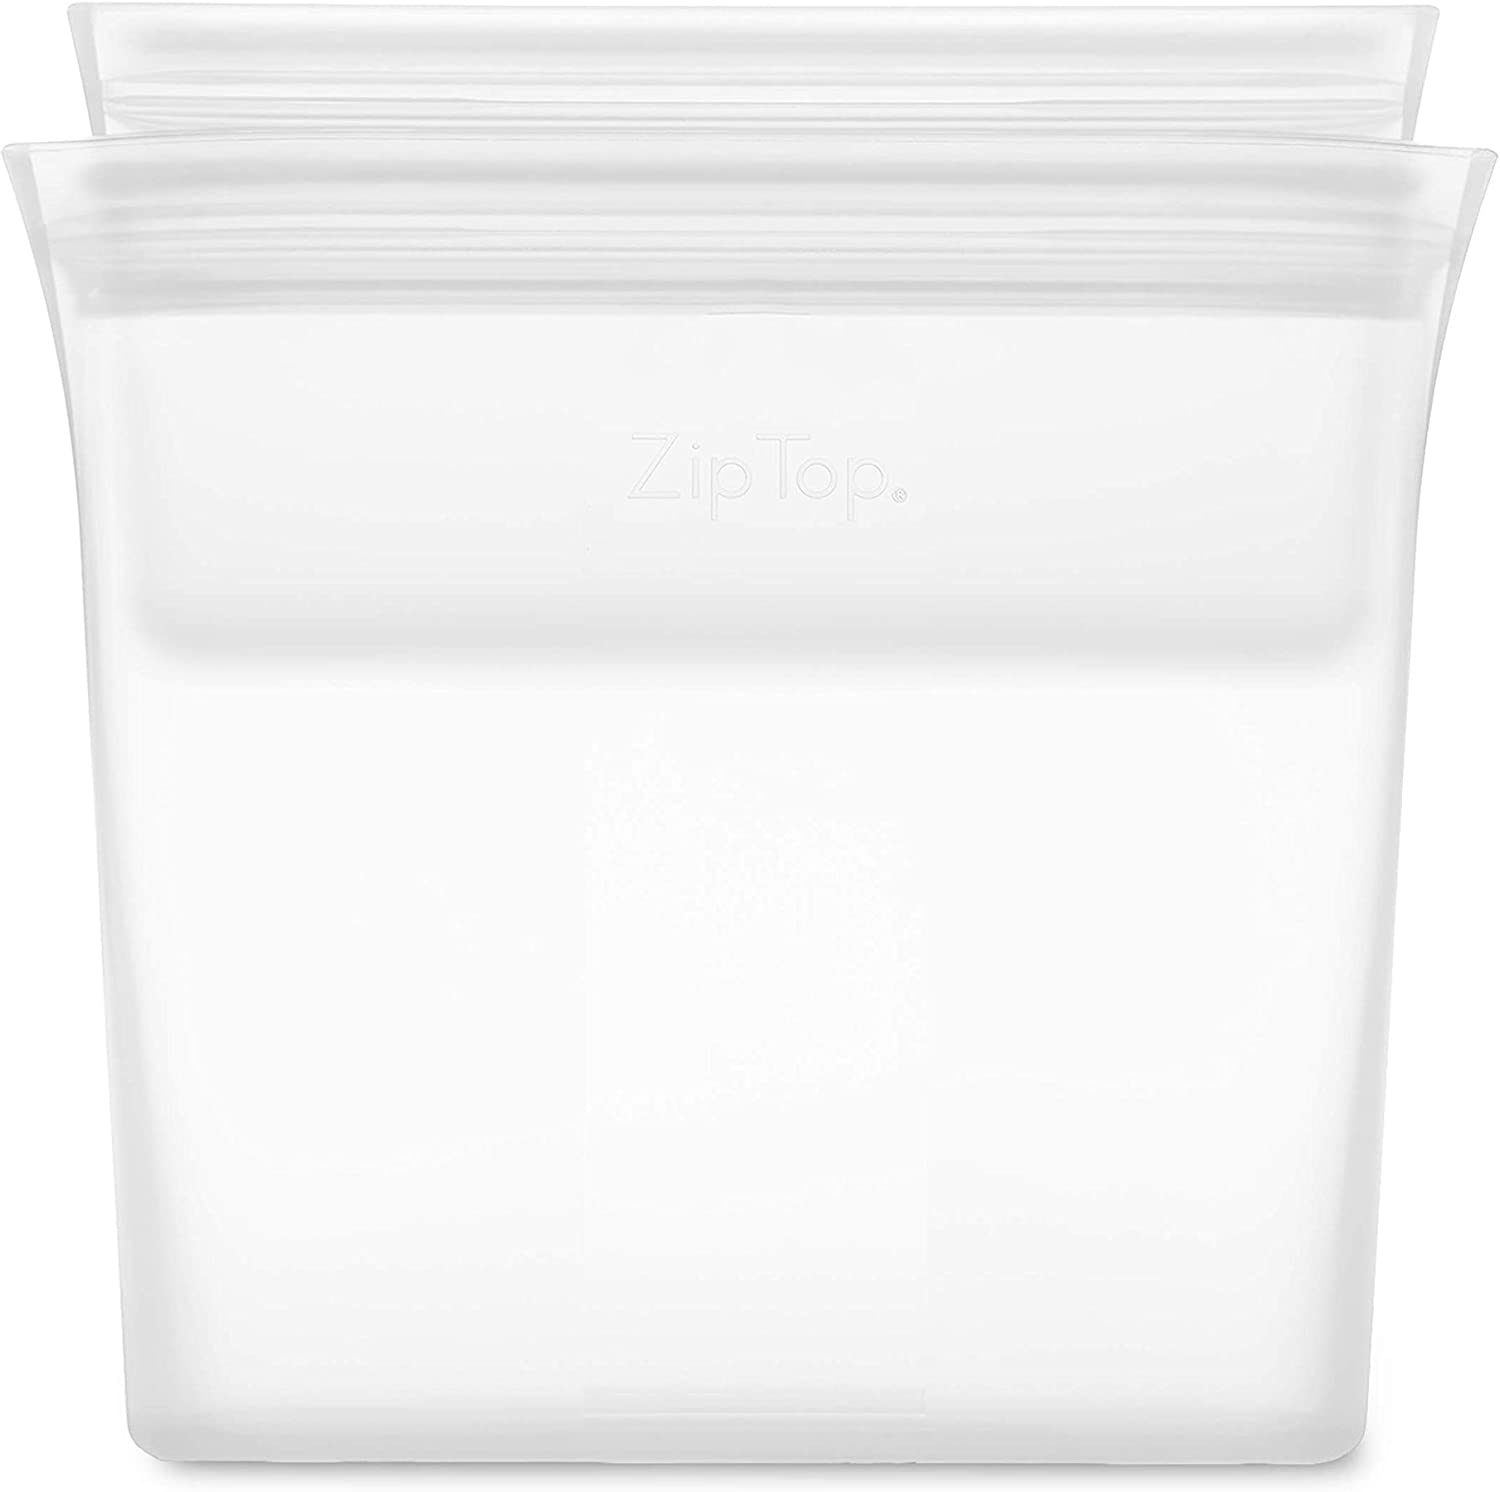 Zip Top Reusable 100% Silicone Food Storage Bags and Containers, Made in the USA - 2 Bag Set - Sandwich & Snack Bags - Frost